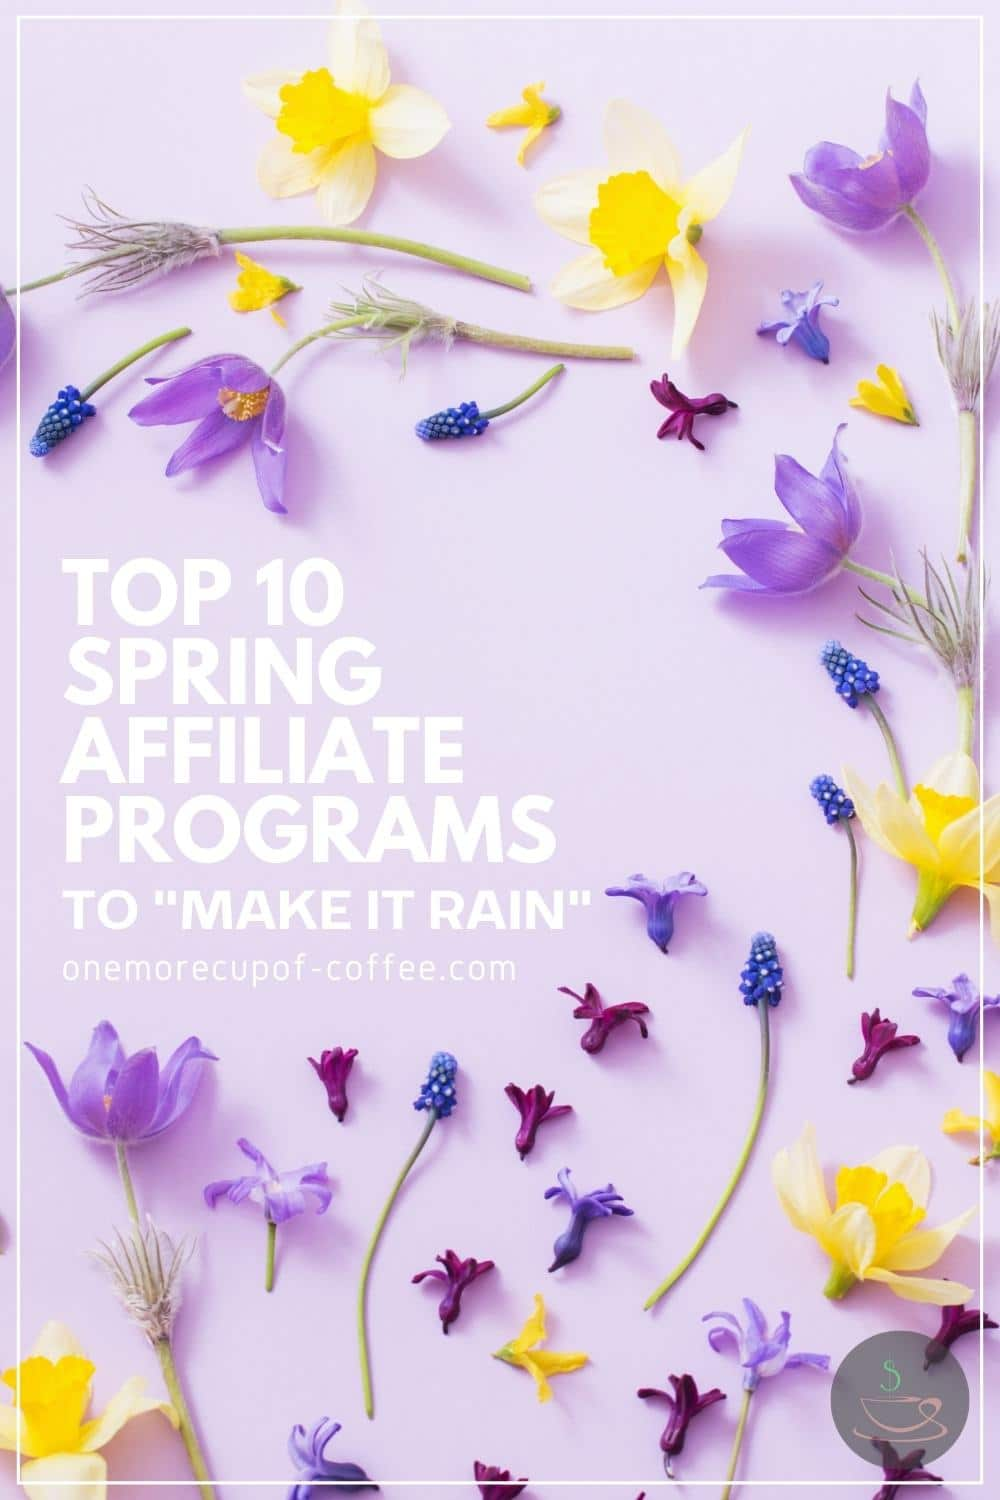 """different colored-flowers arranged against a lavender background with text overlay """"Top 10 Spring Affiliate Programs To _Make It Rain_"""""""